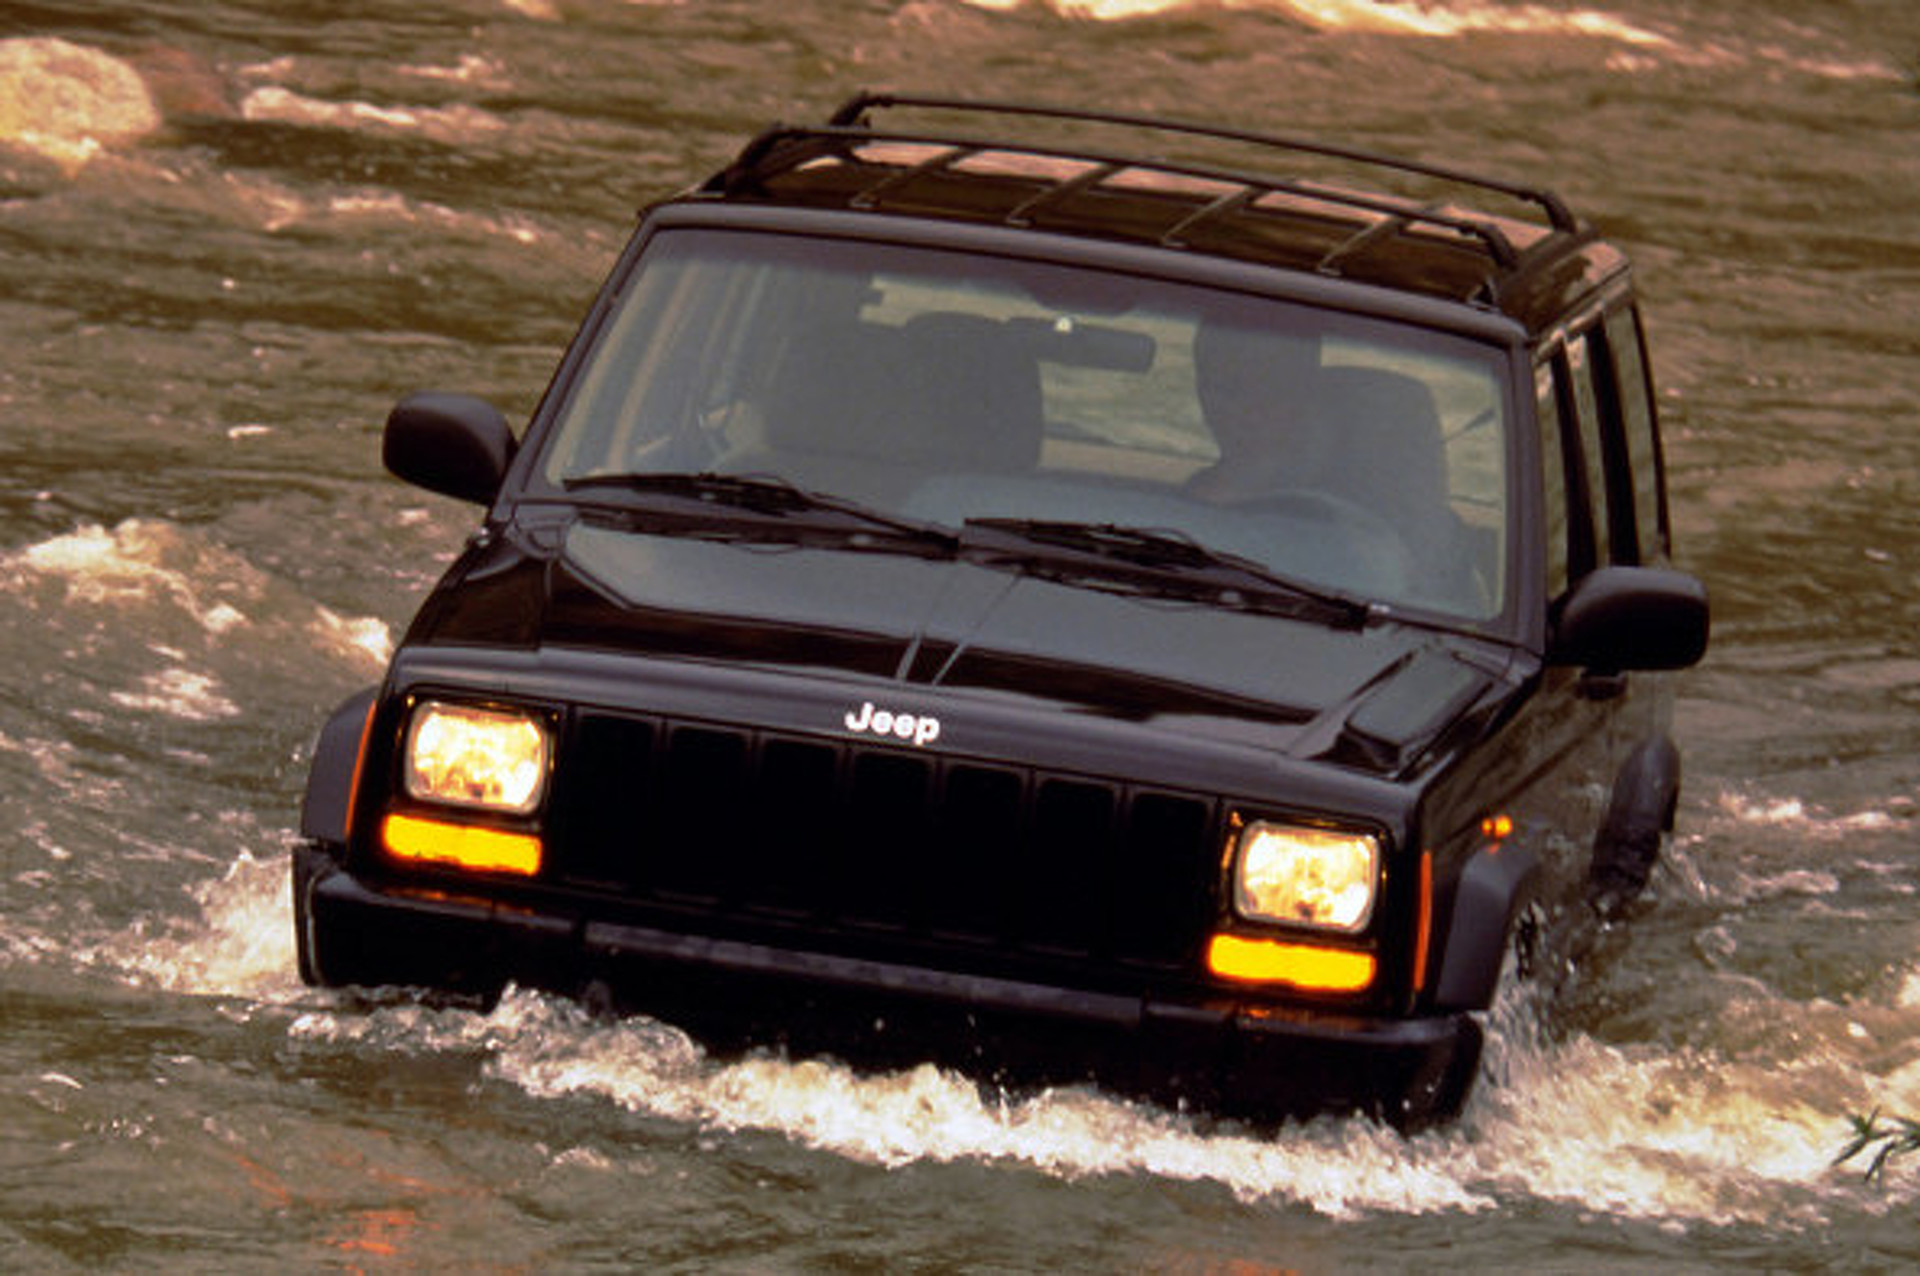 Jeep History And Information Offroaders Com >> Jeep Cherokee Xj To Kl And Mediocrity In Between